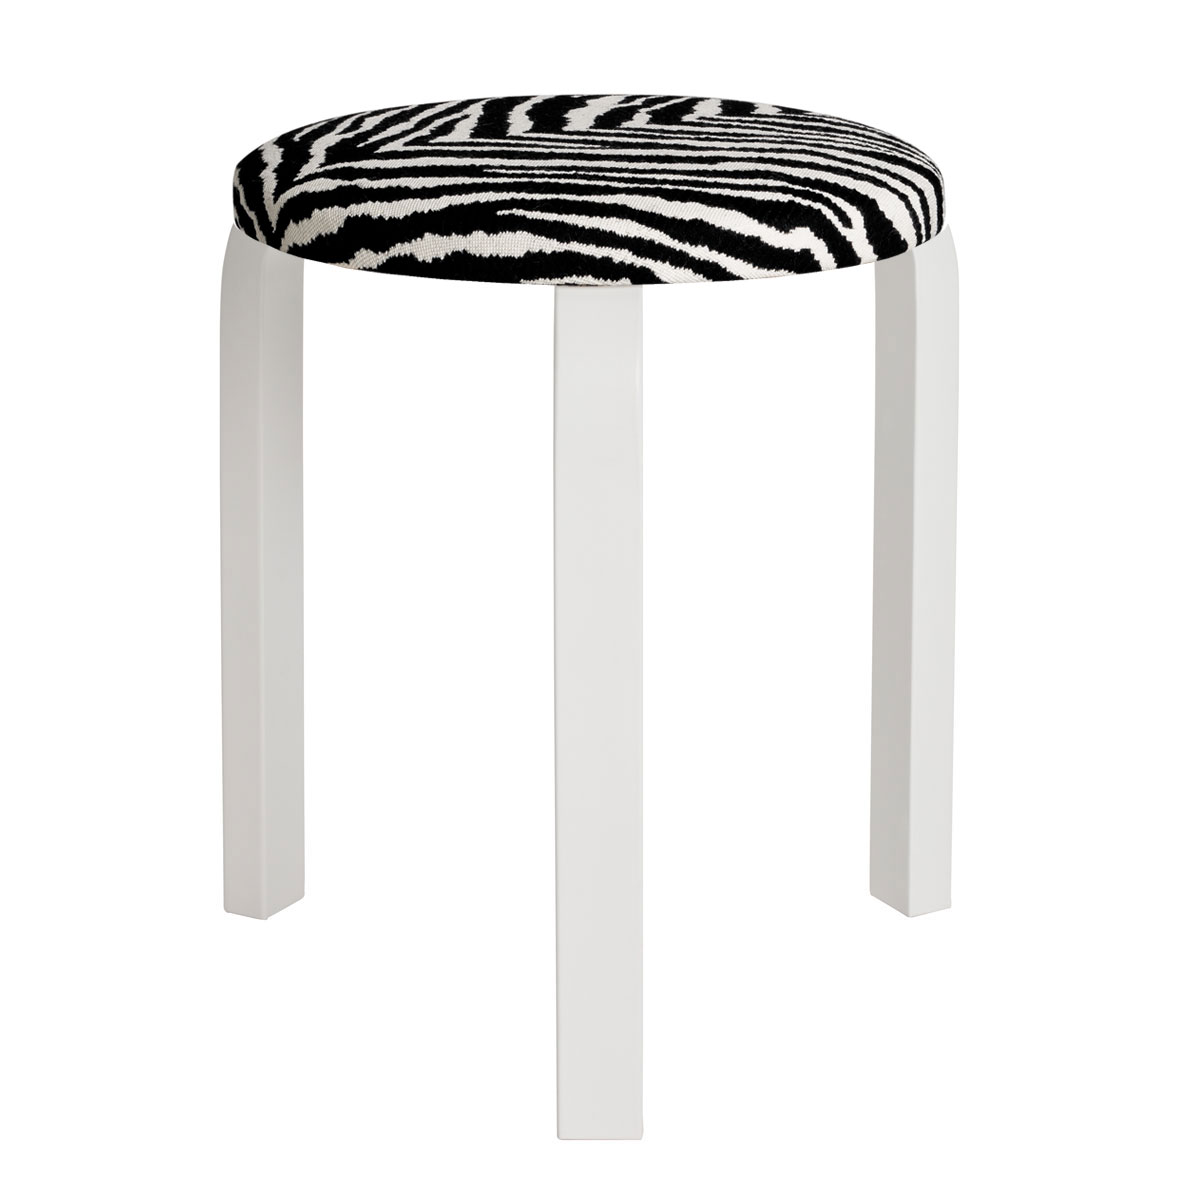 Wondrous Artek Alvar Aalto Stool 60 Three Legged Stool White Lacquered Legs With Zebra Upholstered Seat Creativecarmelina Interior Chair Design Creativecarmelinacom